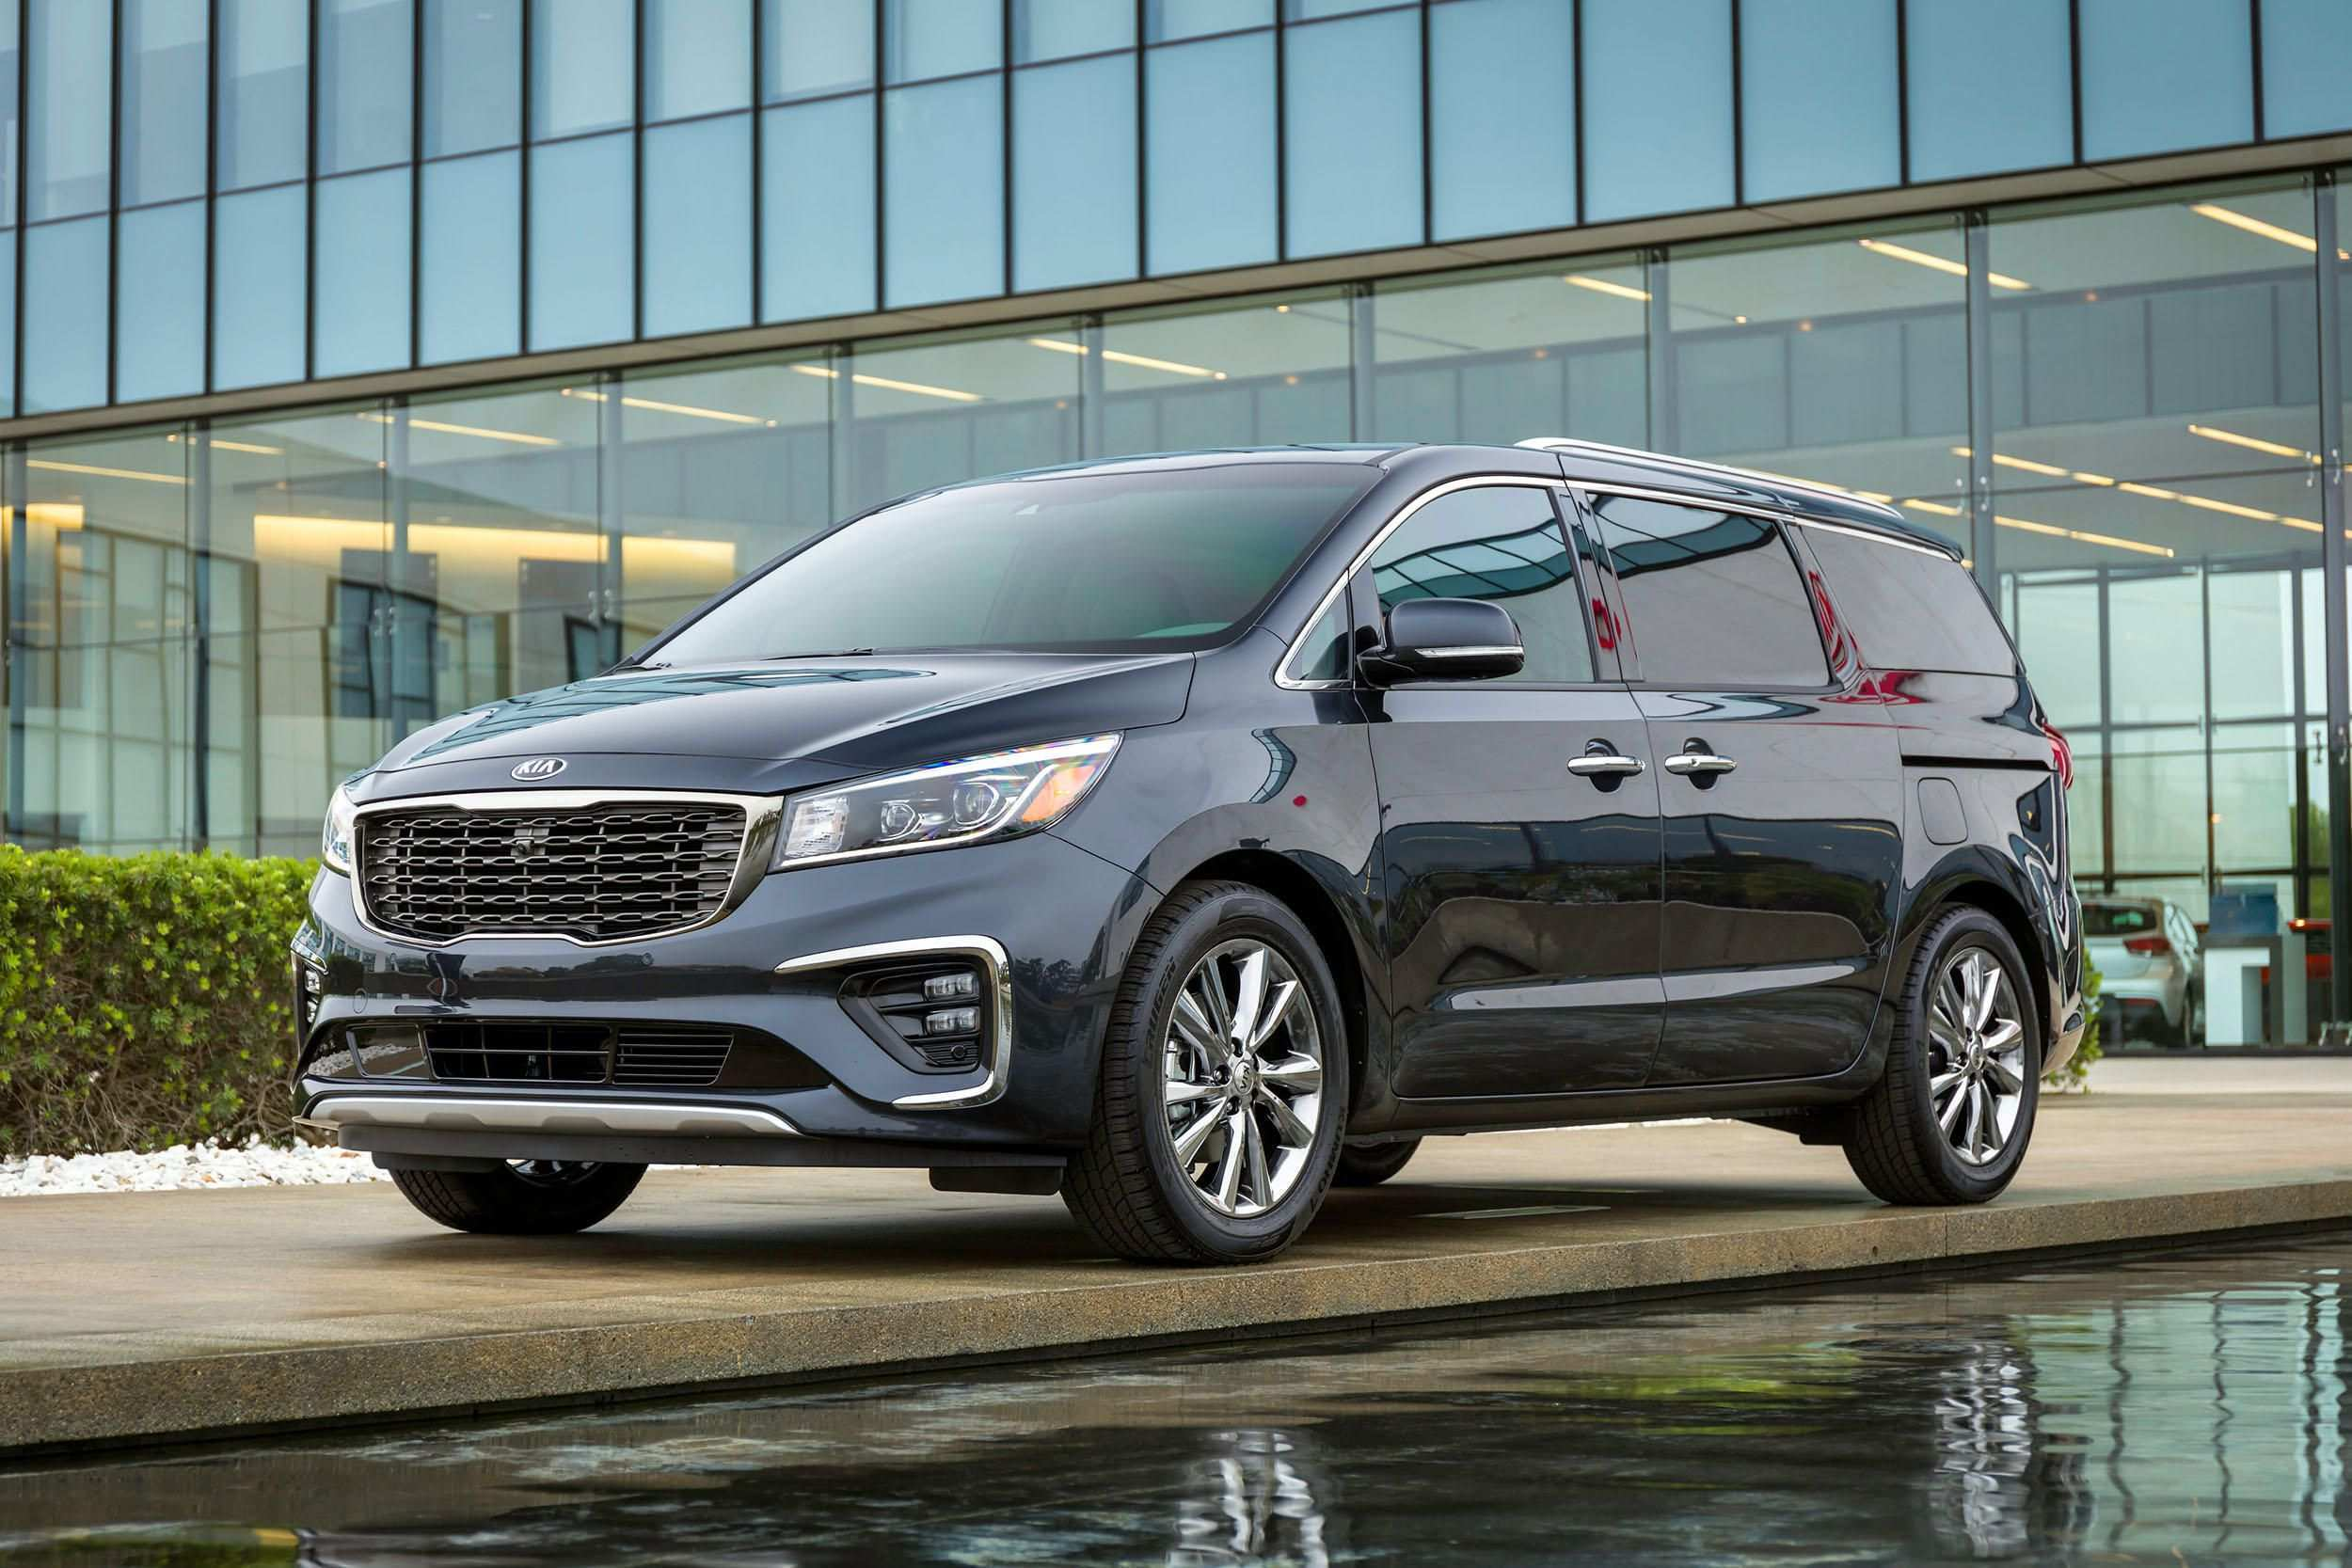 59 Concept of 2019 Kia Minivan Reviews by 2019 Kia Minivan